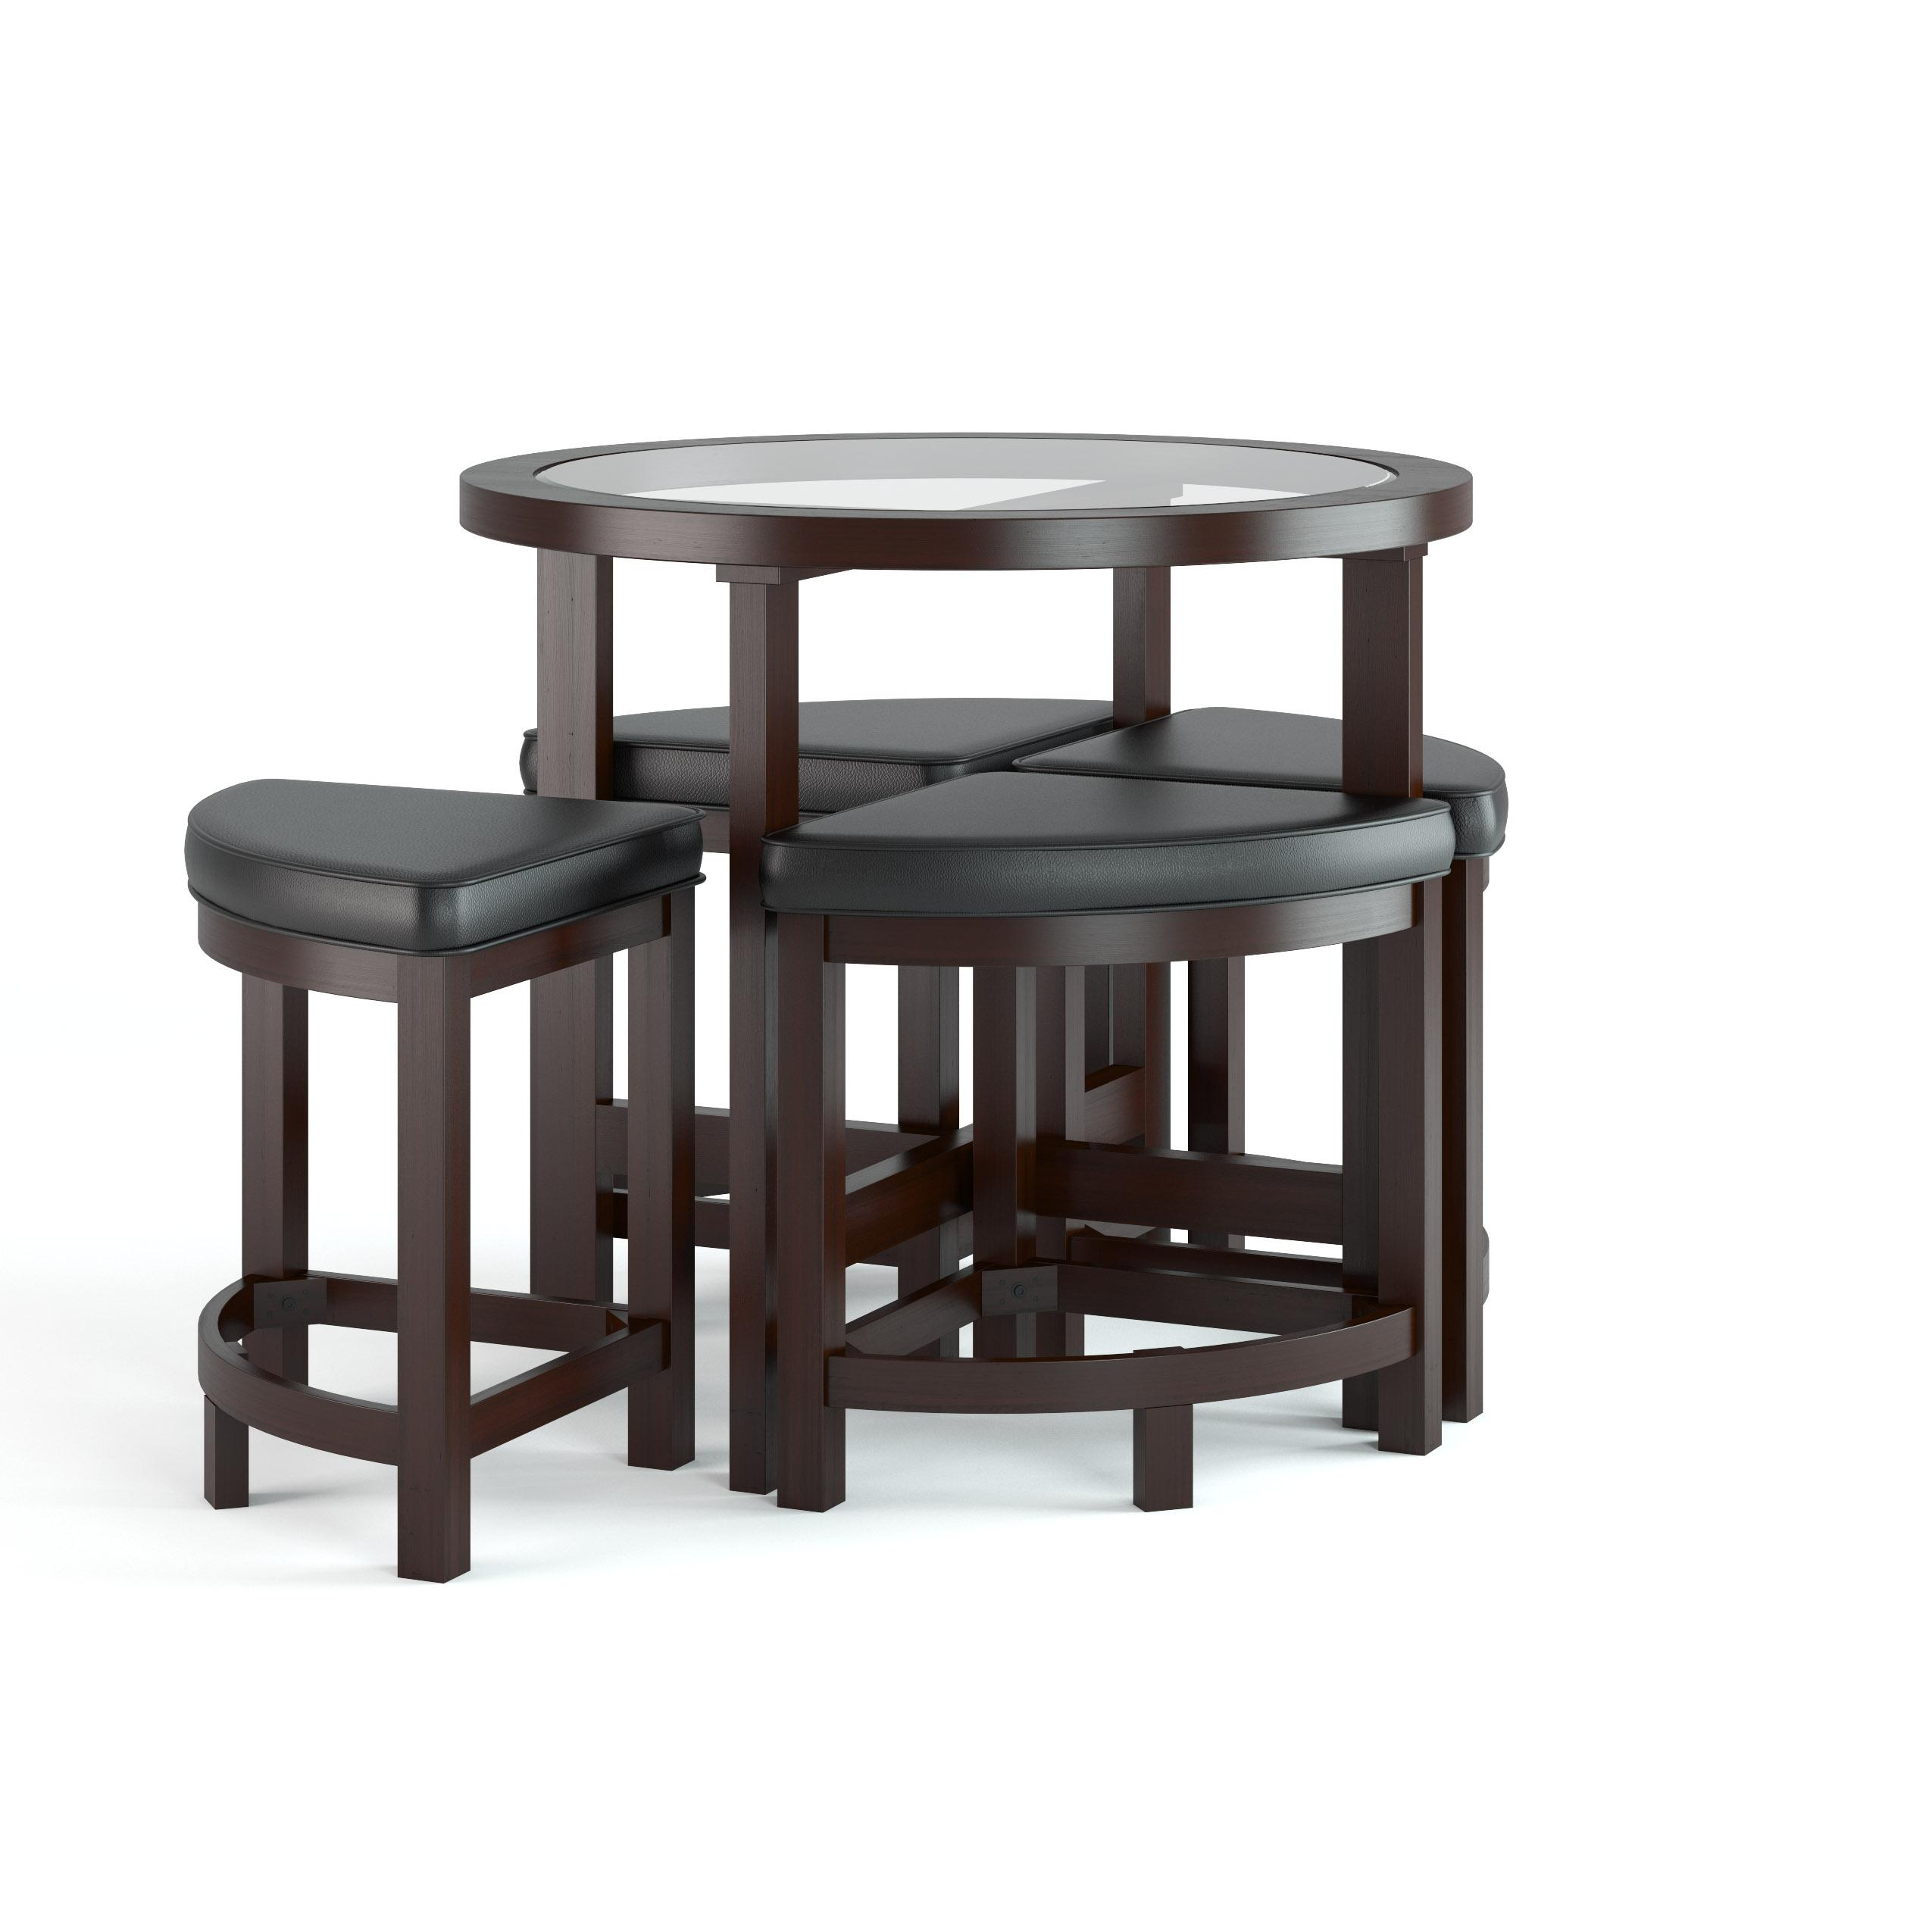 Corliving dbg 699 k belgrove dark espresso for Breakfast table with stools